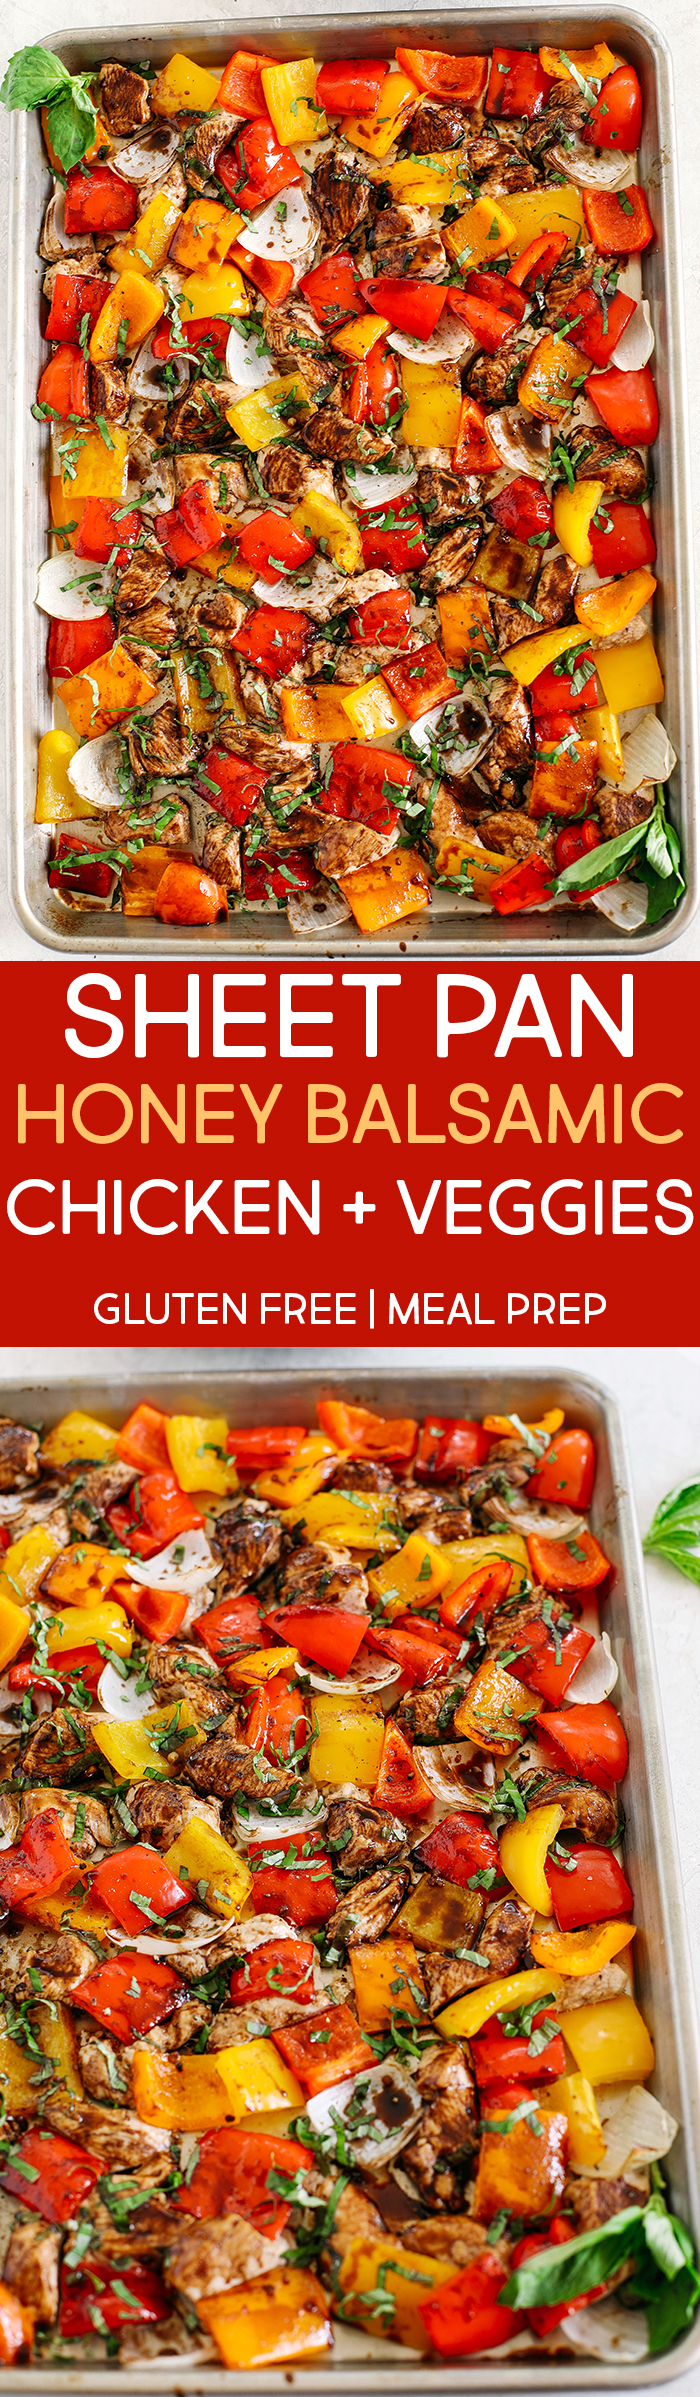 This Sheet Pan Honey Balsamic Chicken and Veggies makes the perfect weeknight dinner that's healthy, delicious and easily made all on one pan in under 30 minutes!  Perfect recipe for your Sunday meal prep too!